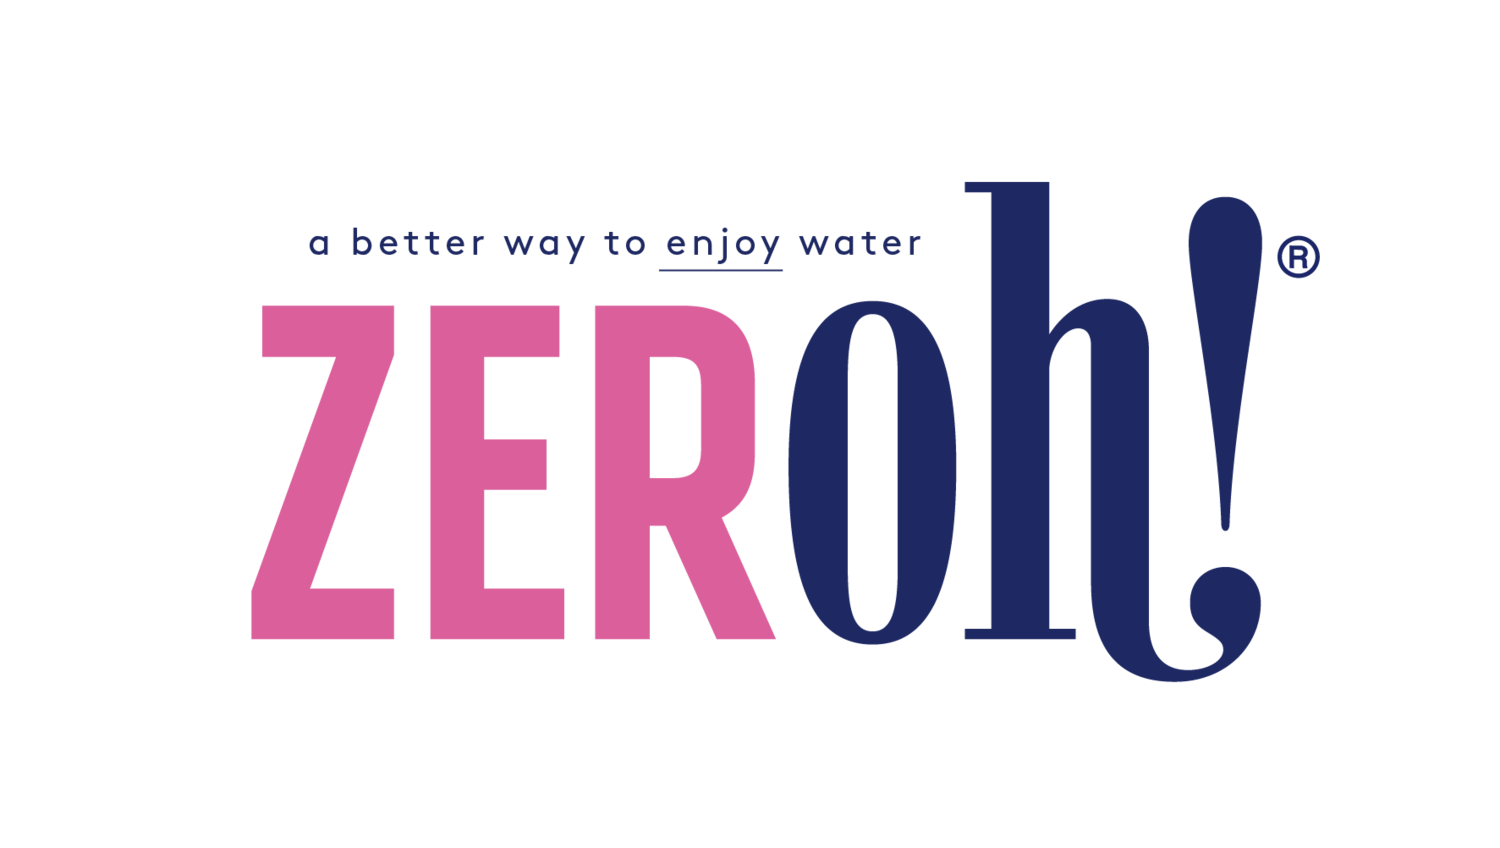 ZERoh! A better way to enjoy water